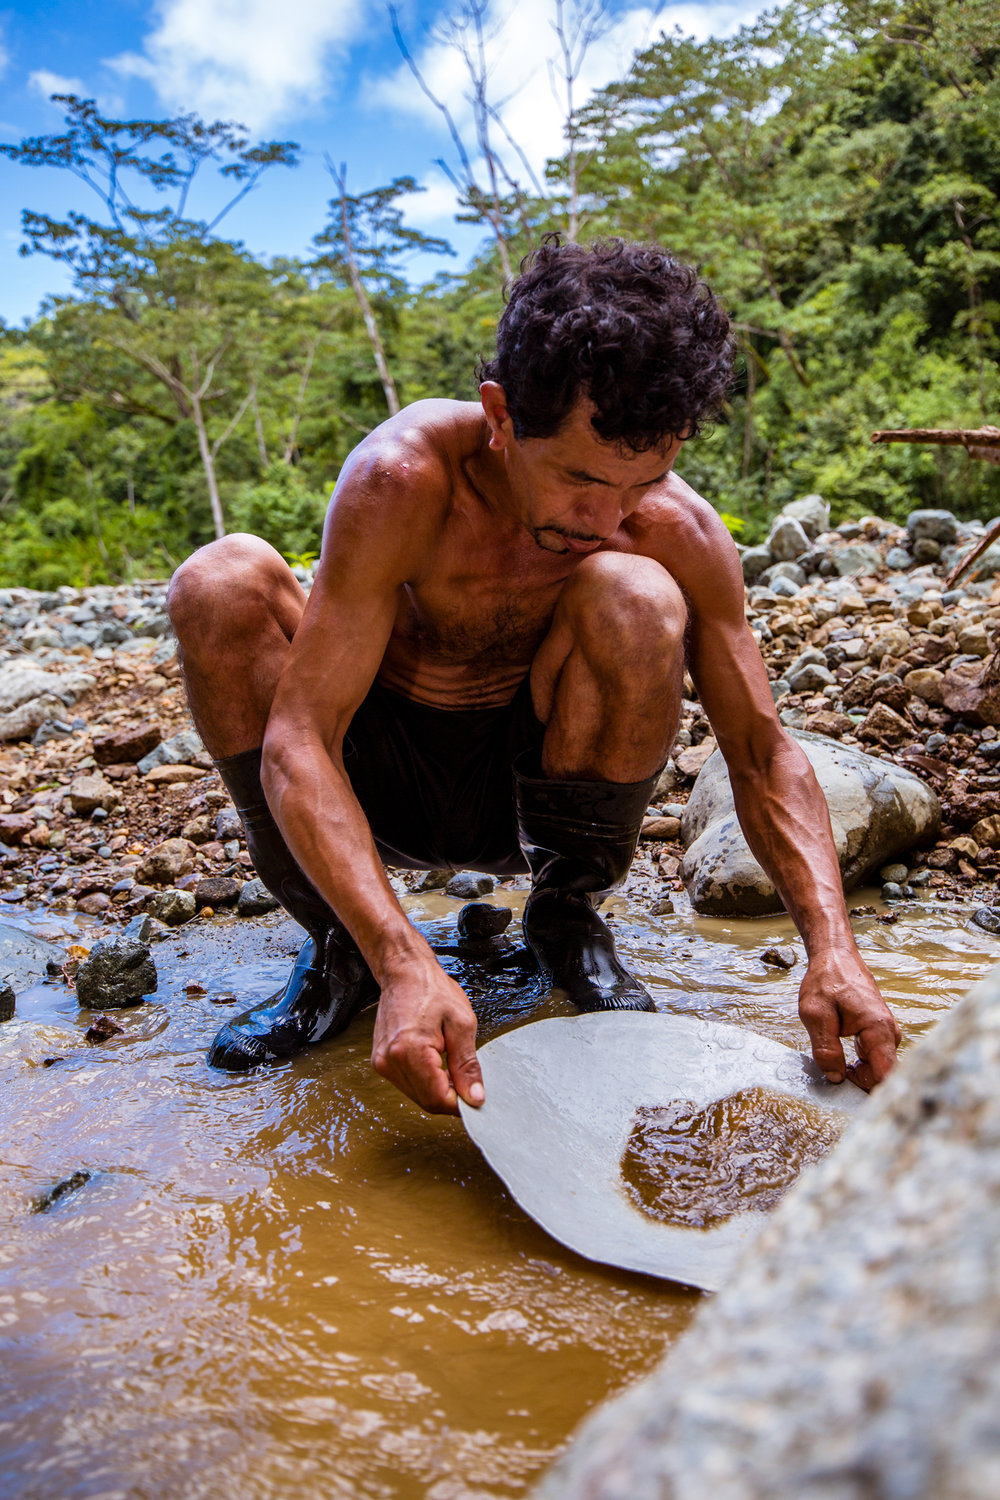 Gold Panning in Rio Carate